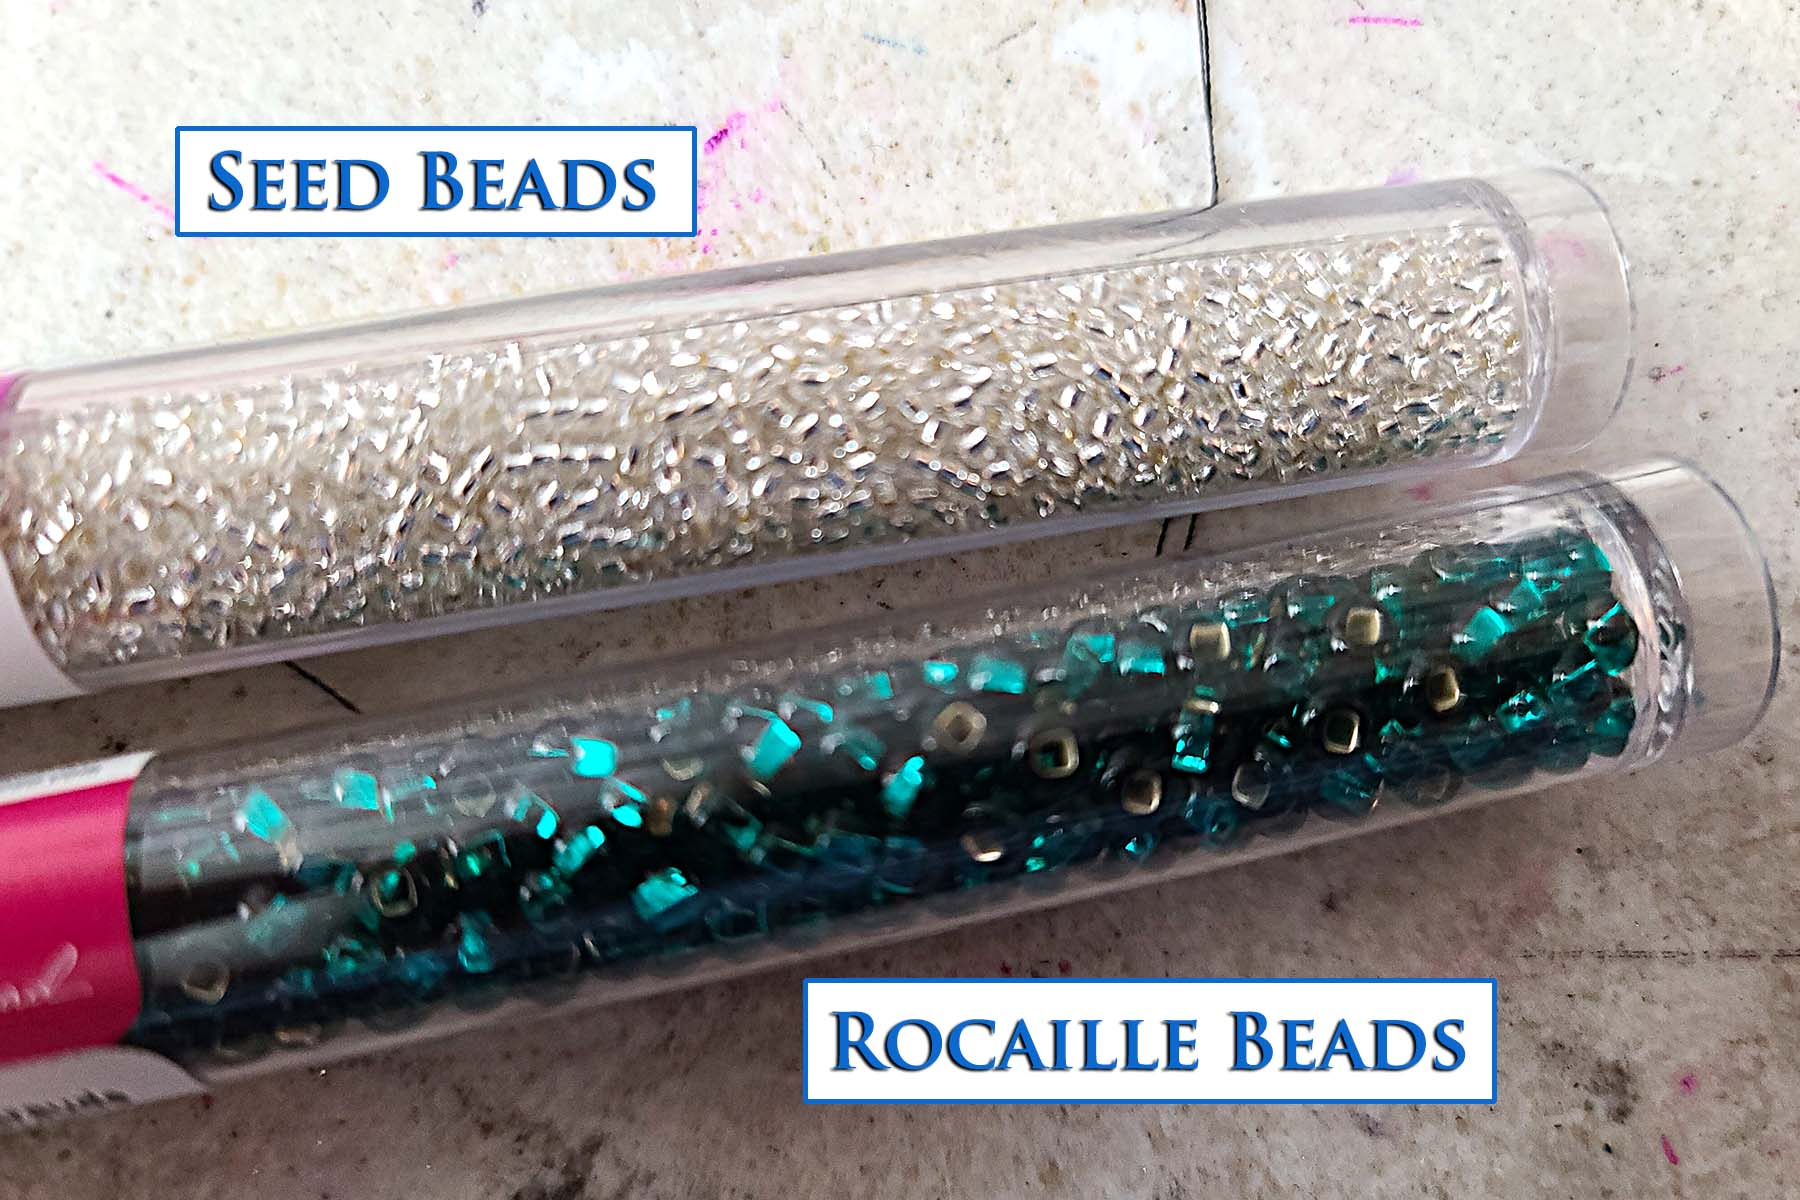 2 long, clear plastic tubes filled with beads. One has clear seed beads, the other has green rocaille beads in it.